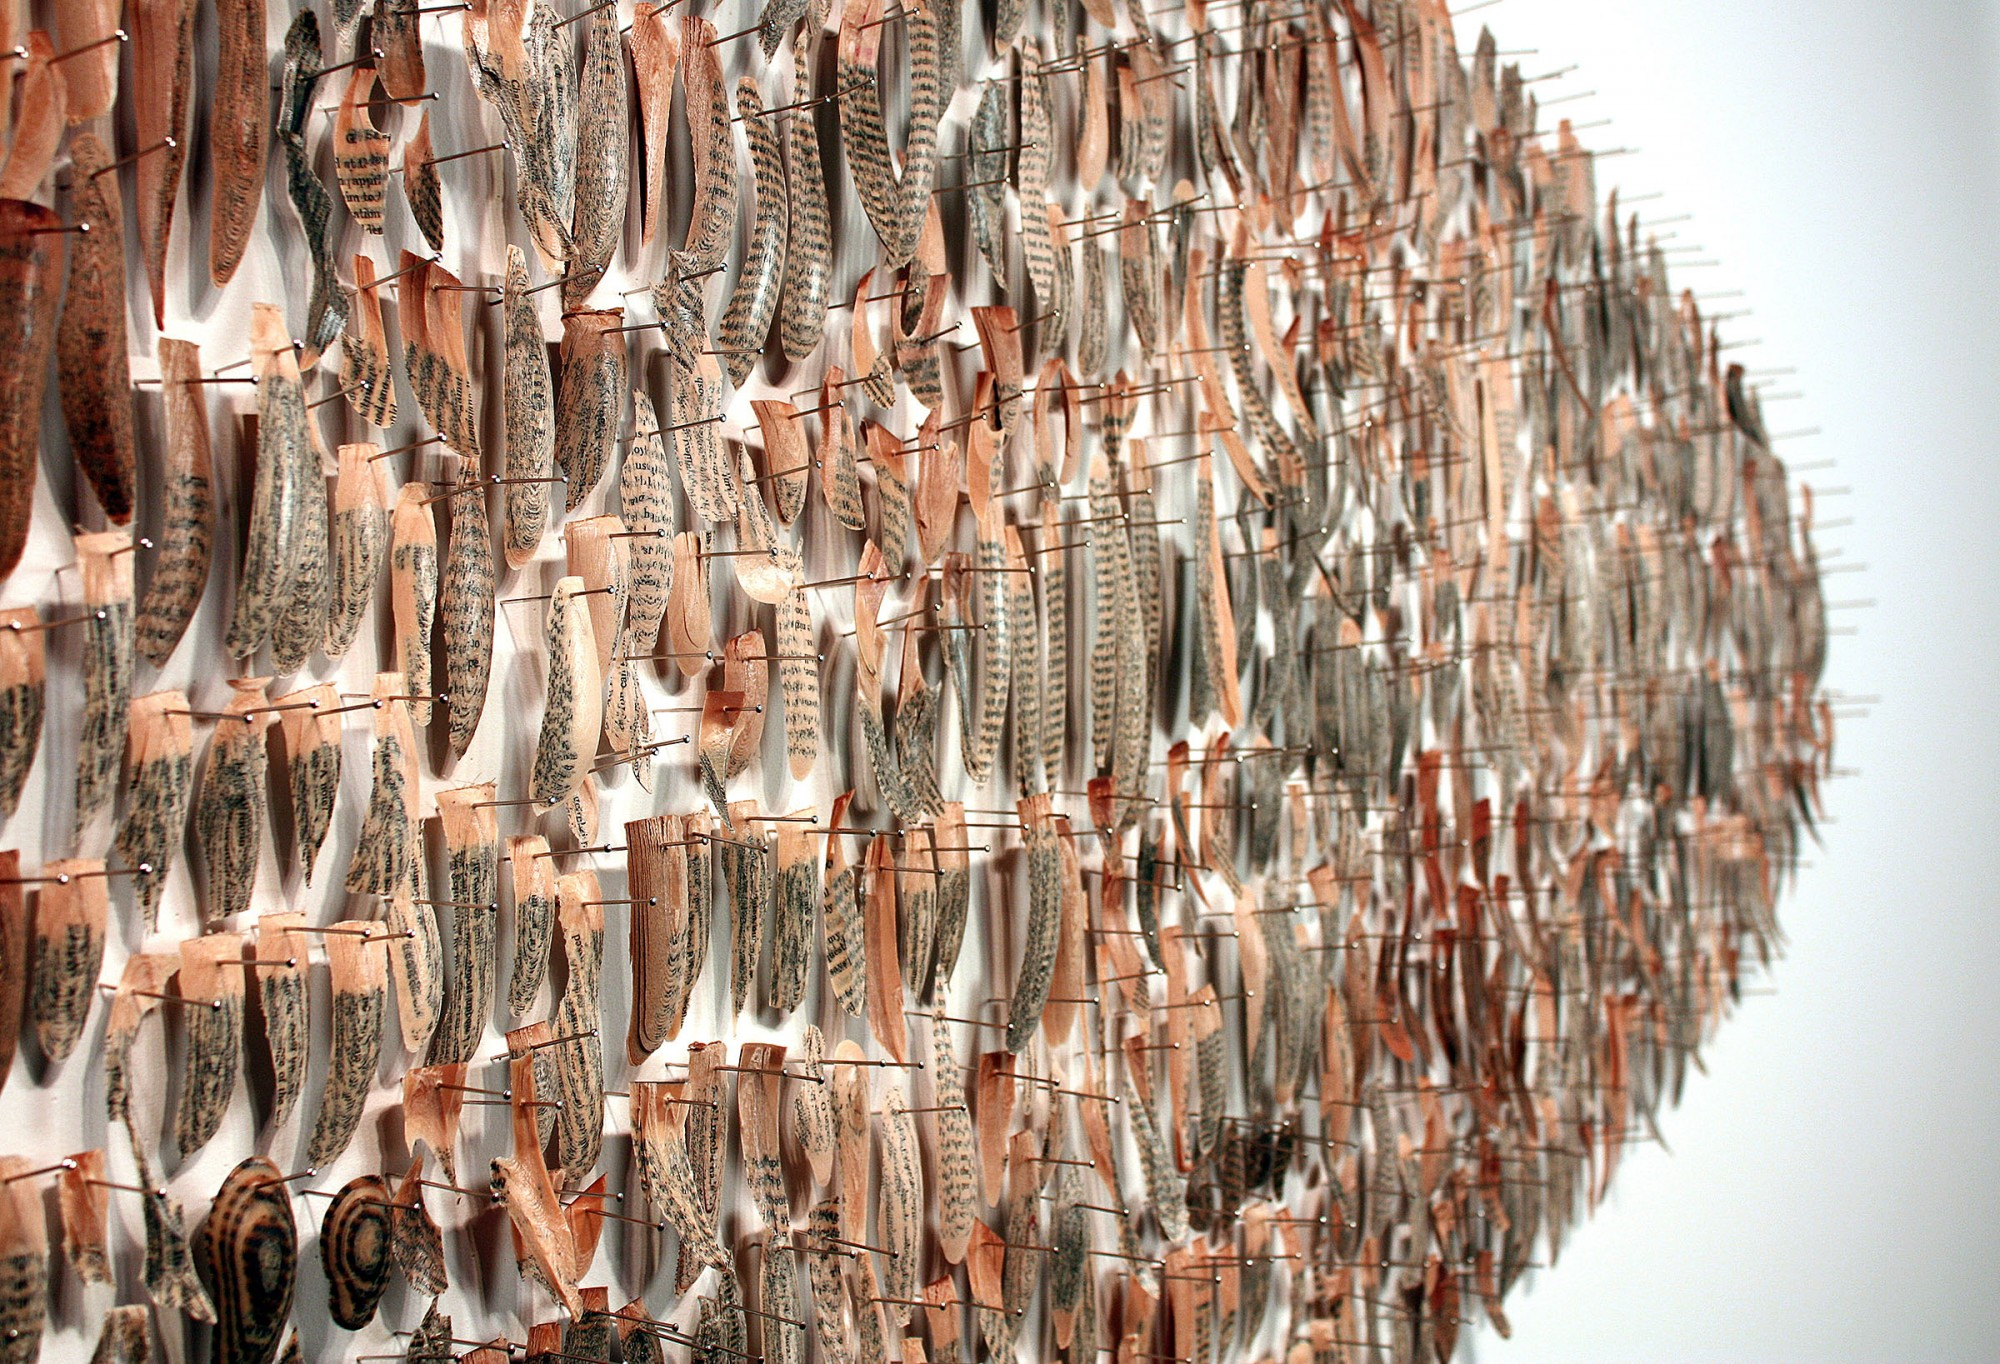 Artist Creates Massive Altered Book Sculptures Coated in Wax by Jessica Drenk - Bibliophylum